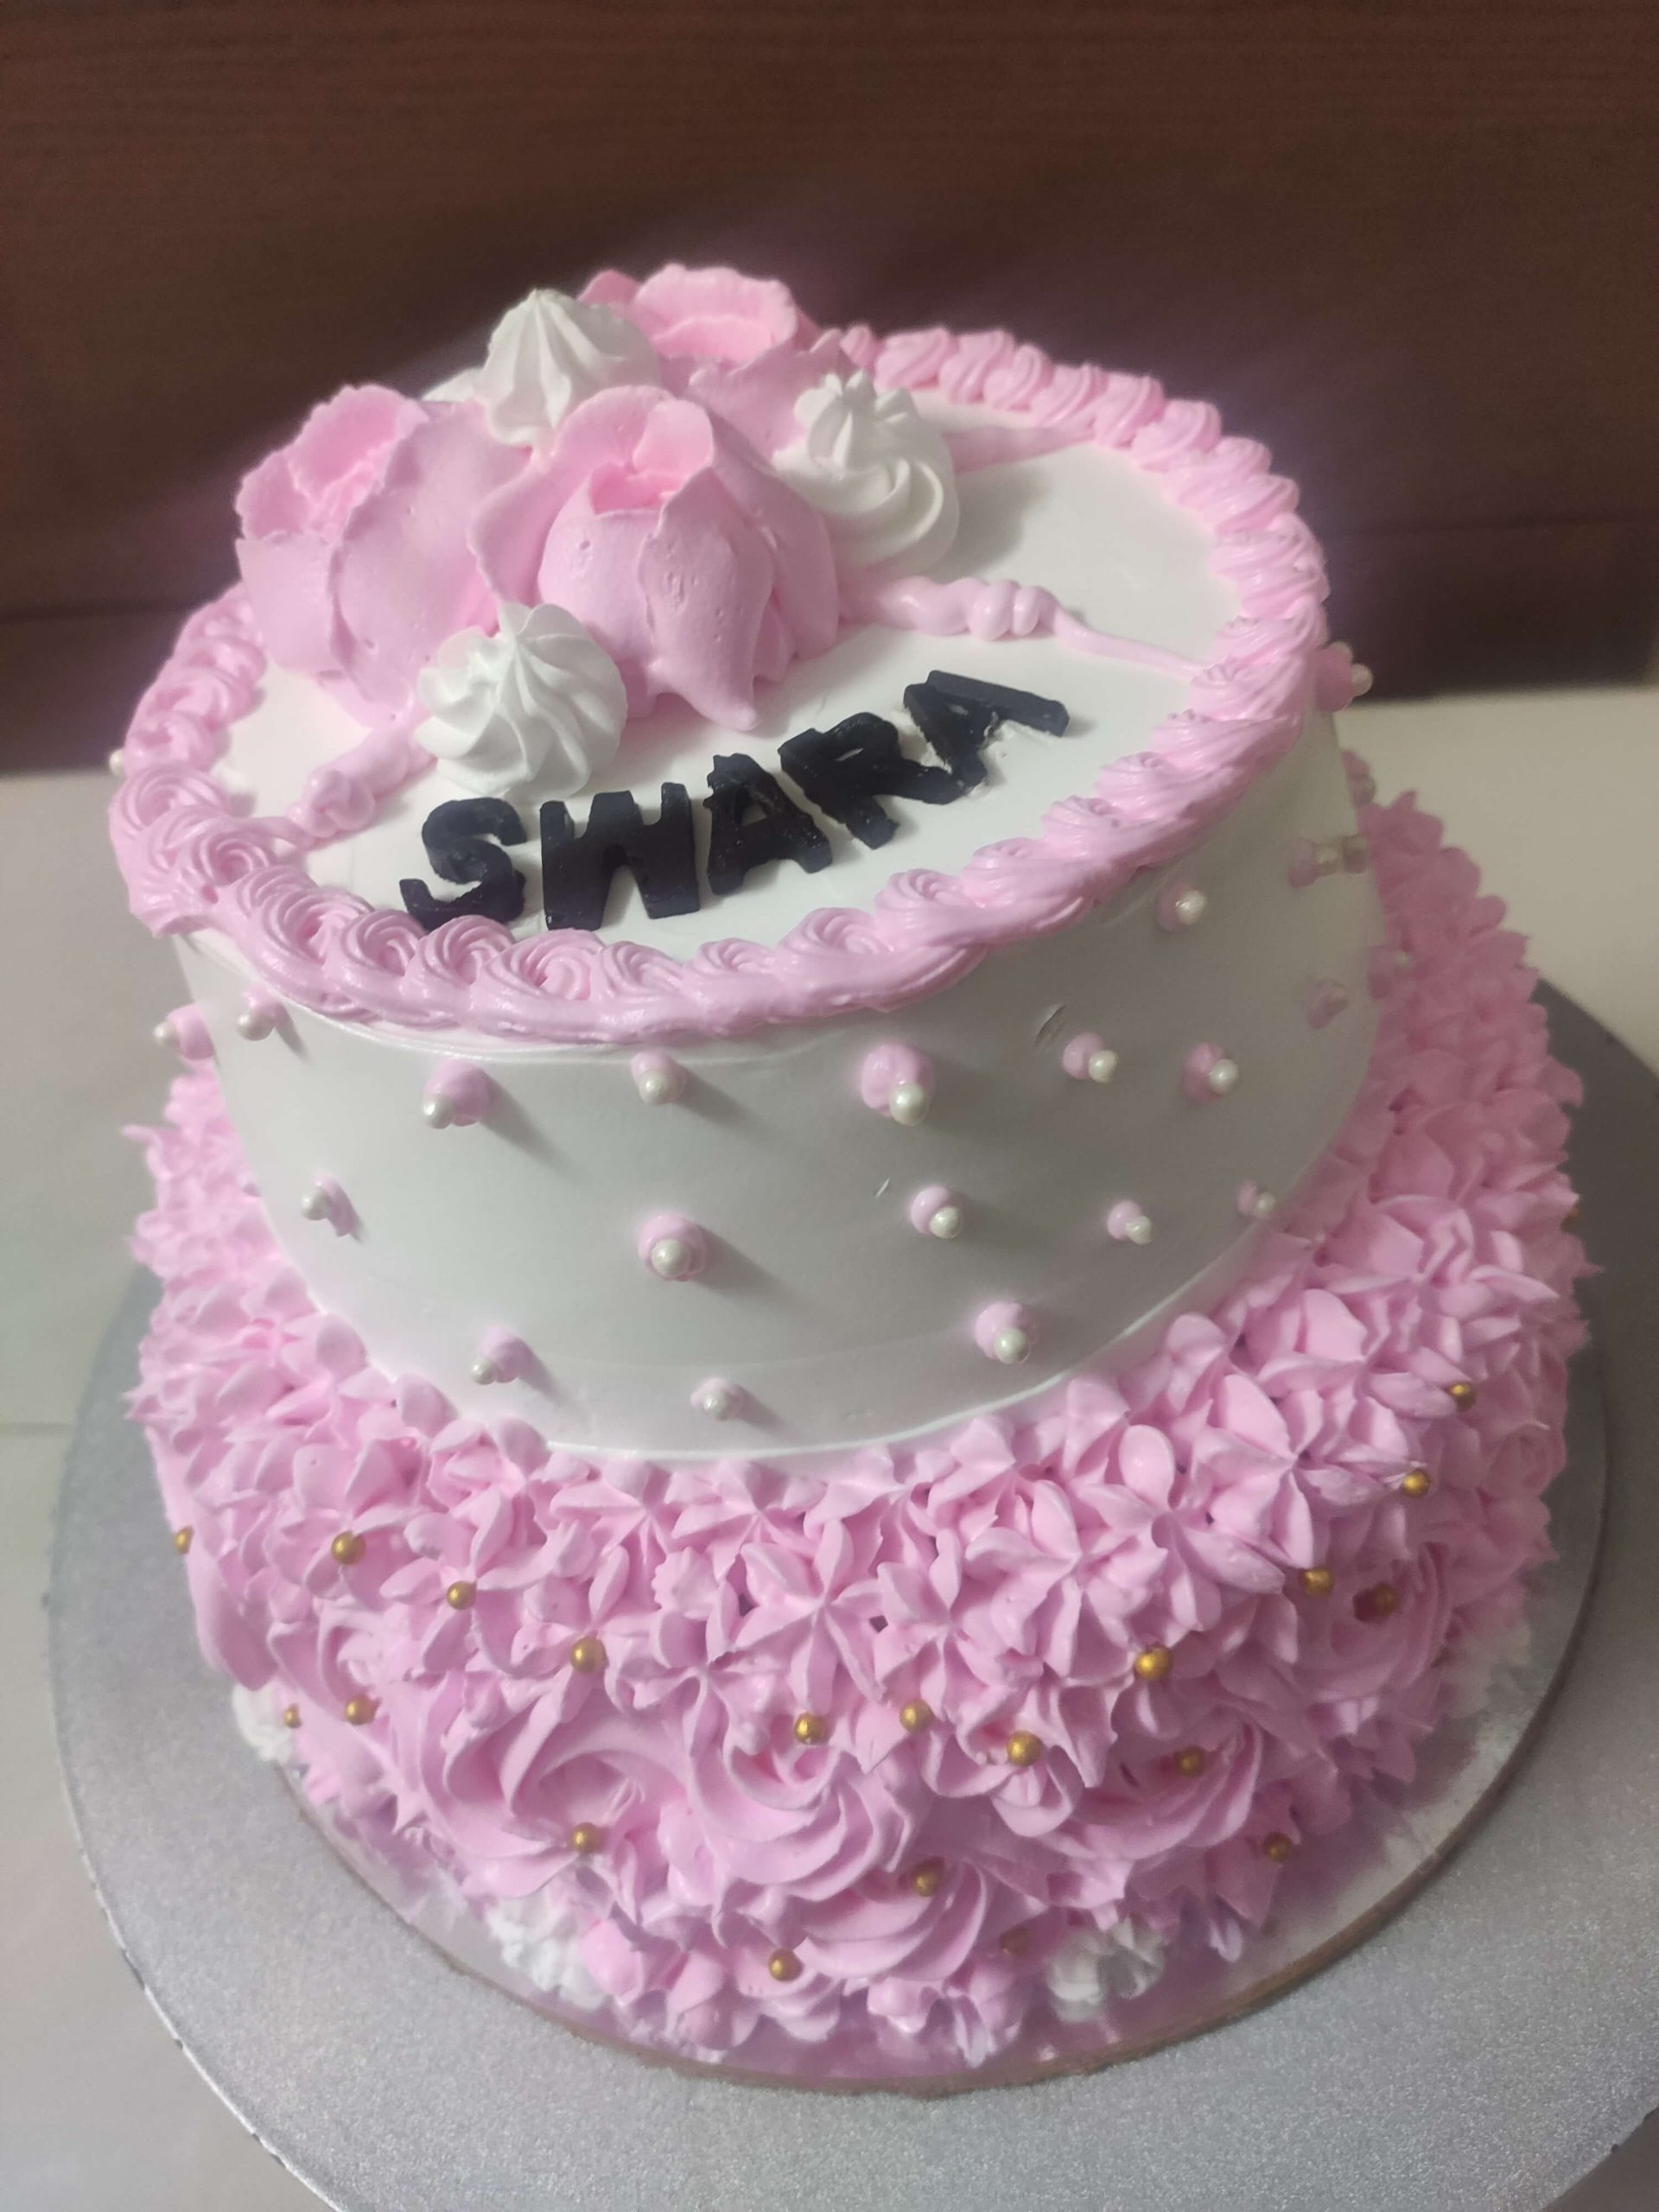 Two Tier Cake Designs, Images, Price Near Me